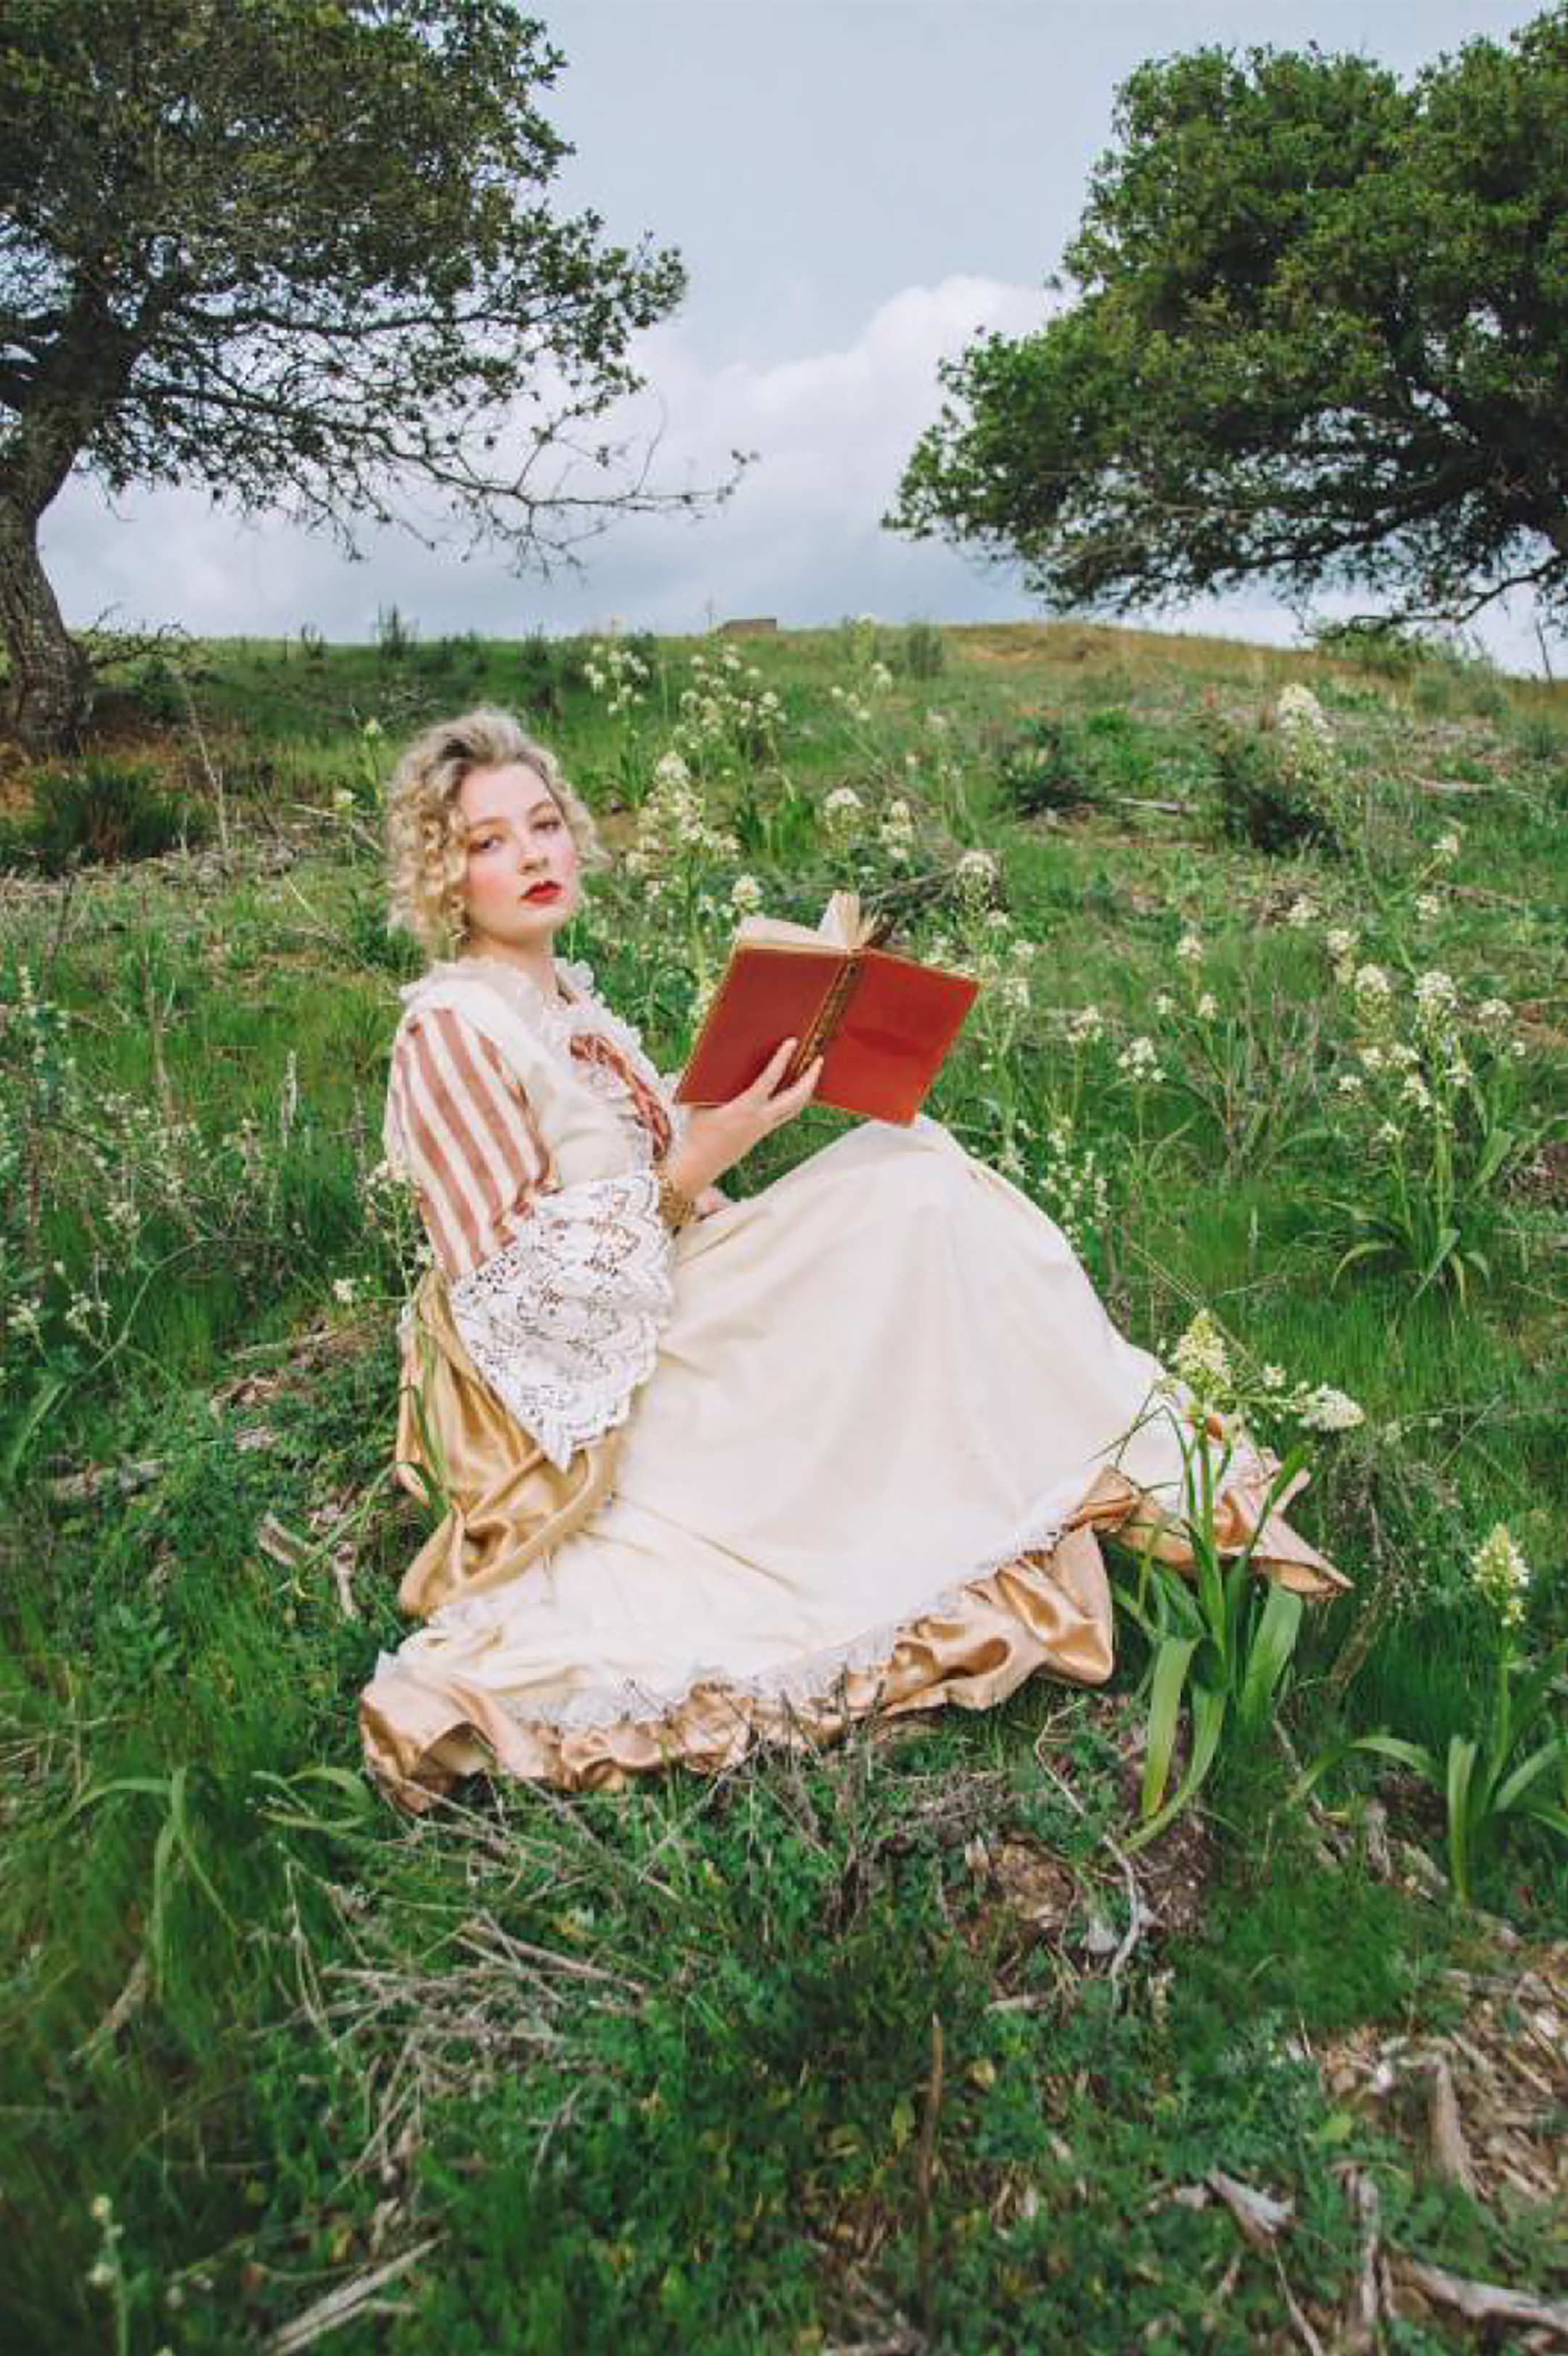 Photograph of a young woman in a victorian dress reclining in a green field while reading a book